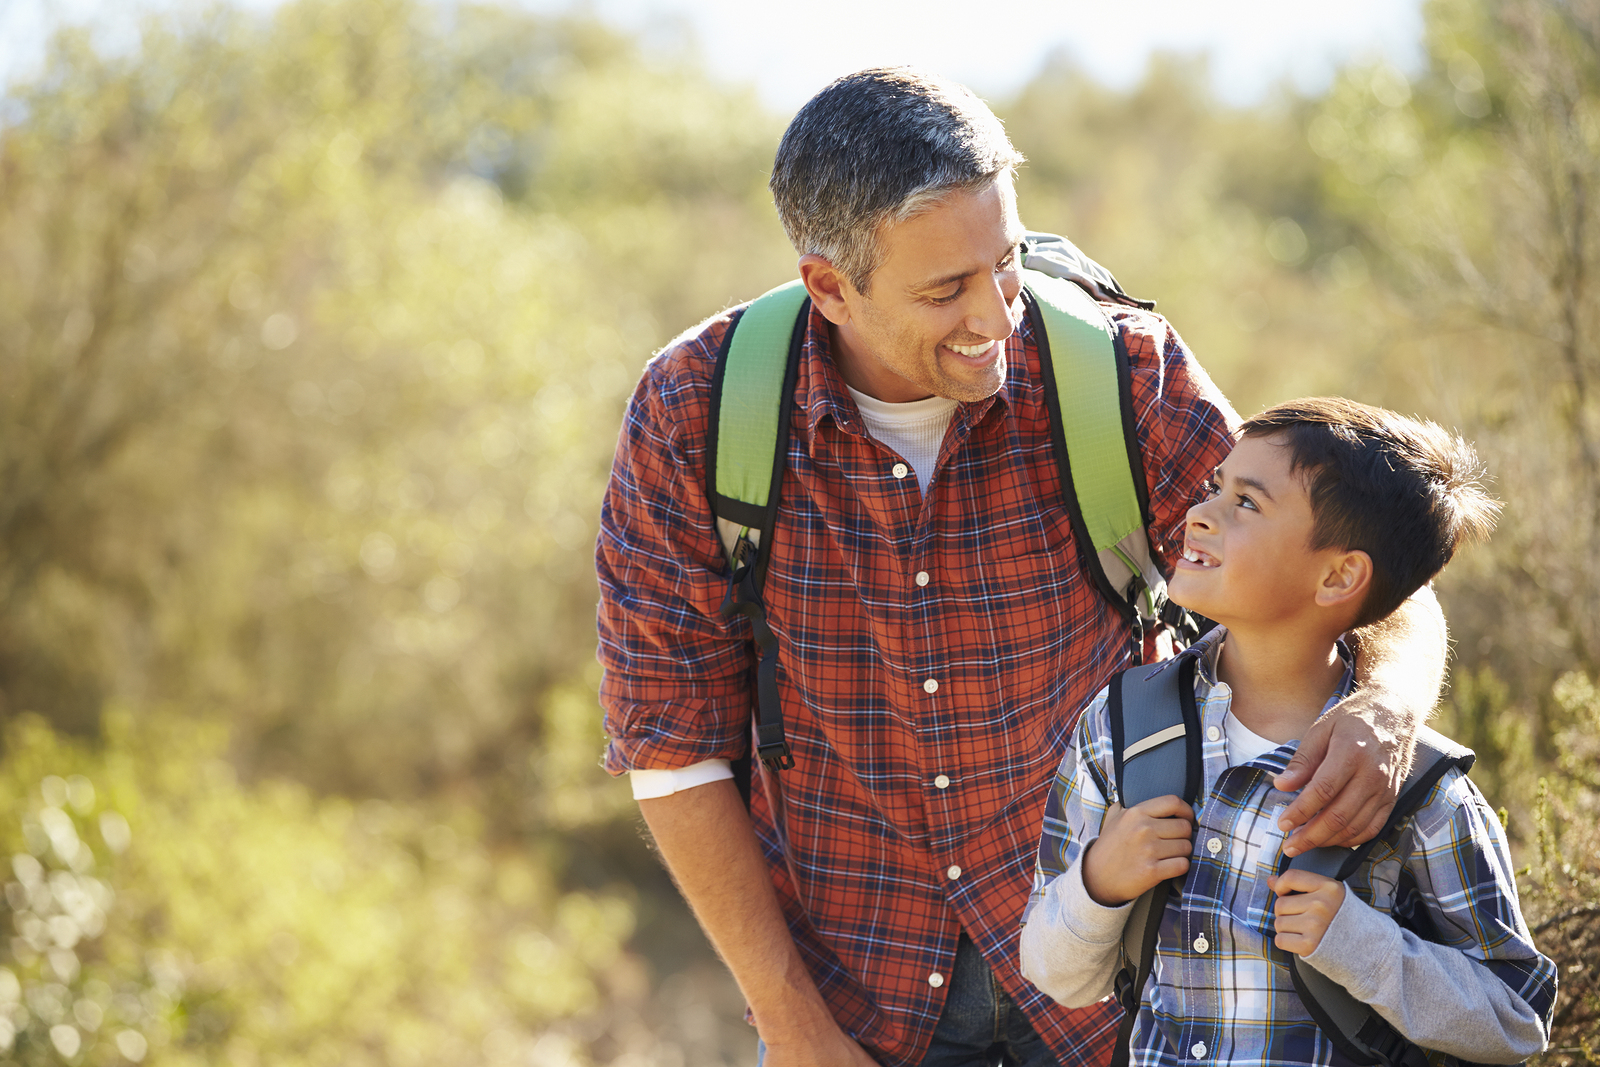 Give the Gift of Good Health This Father's Day